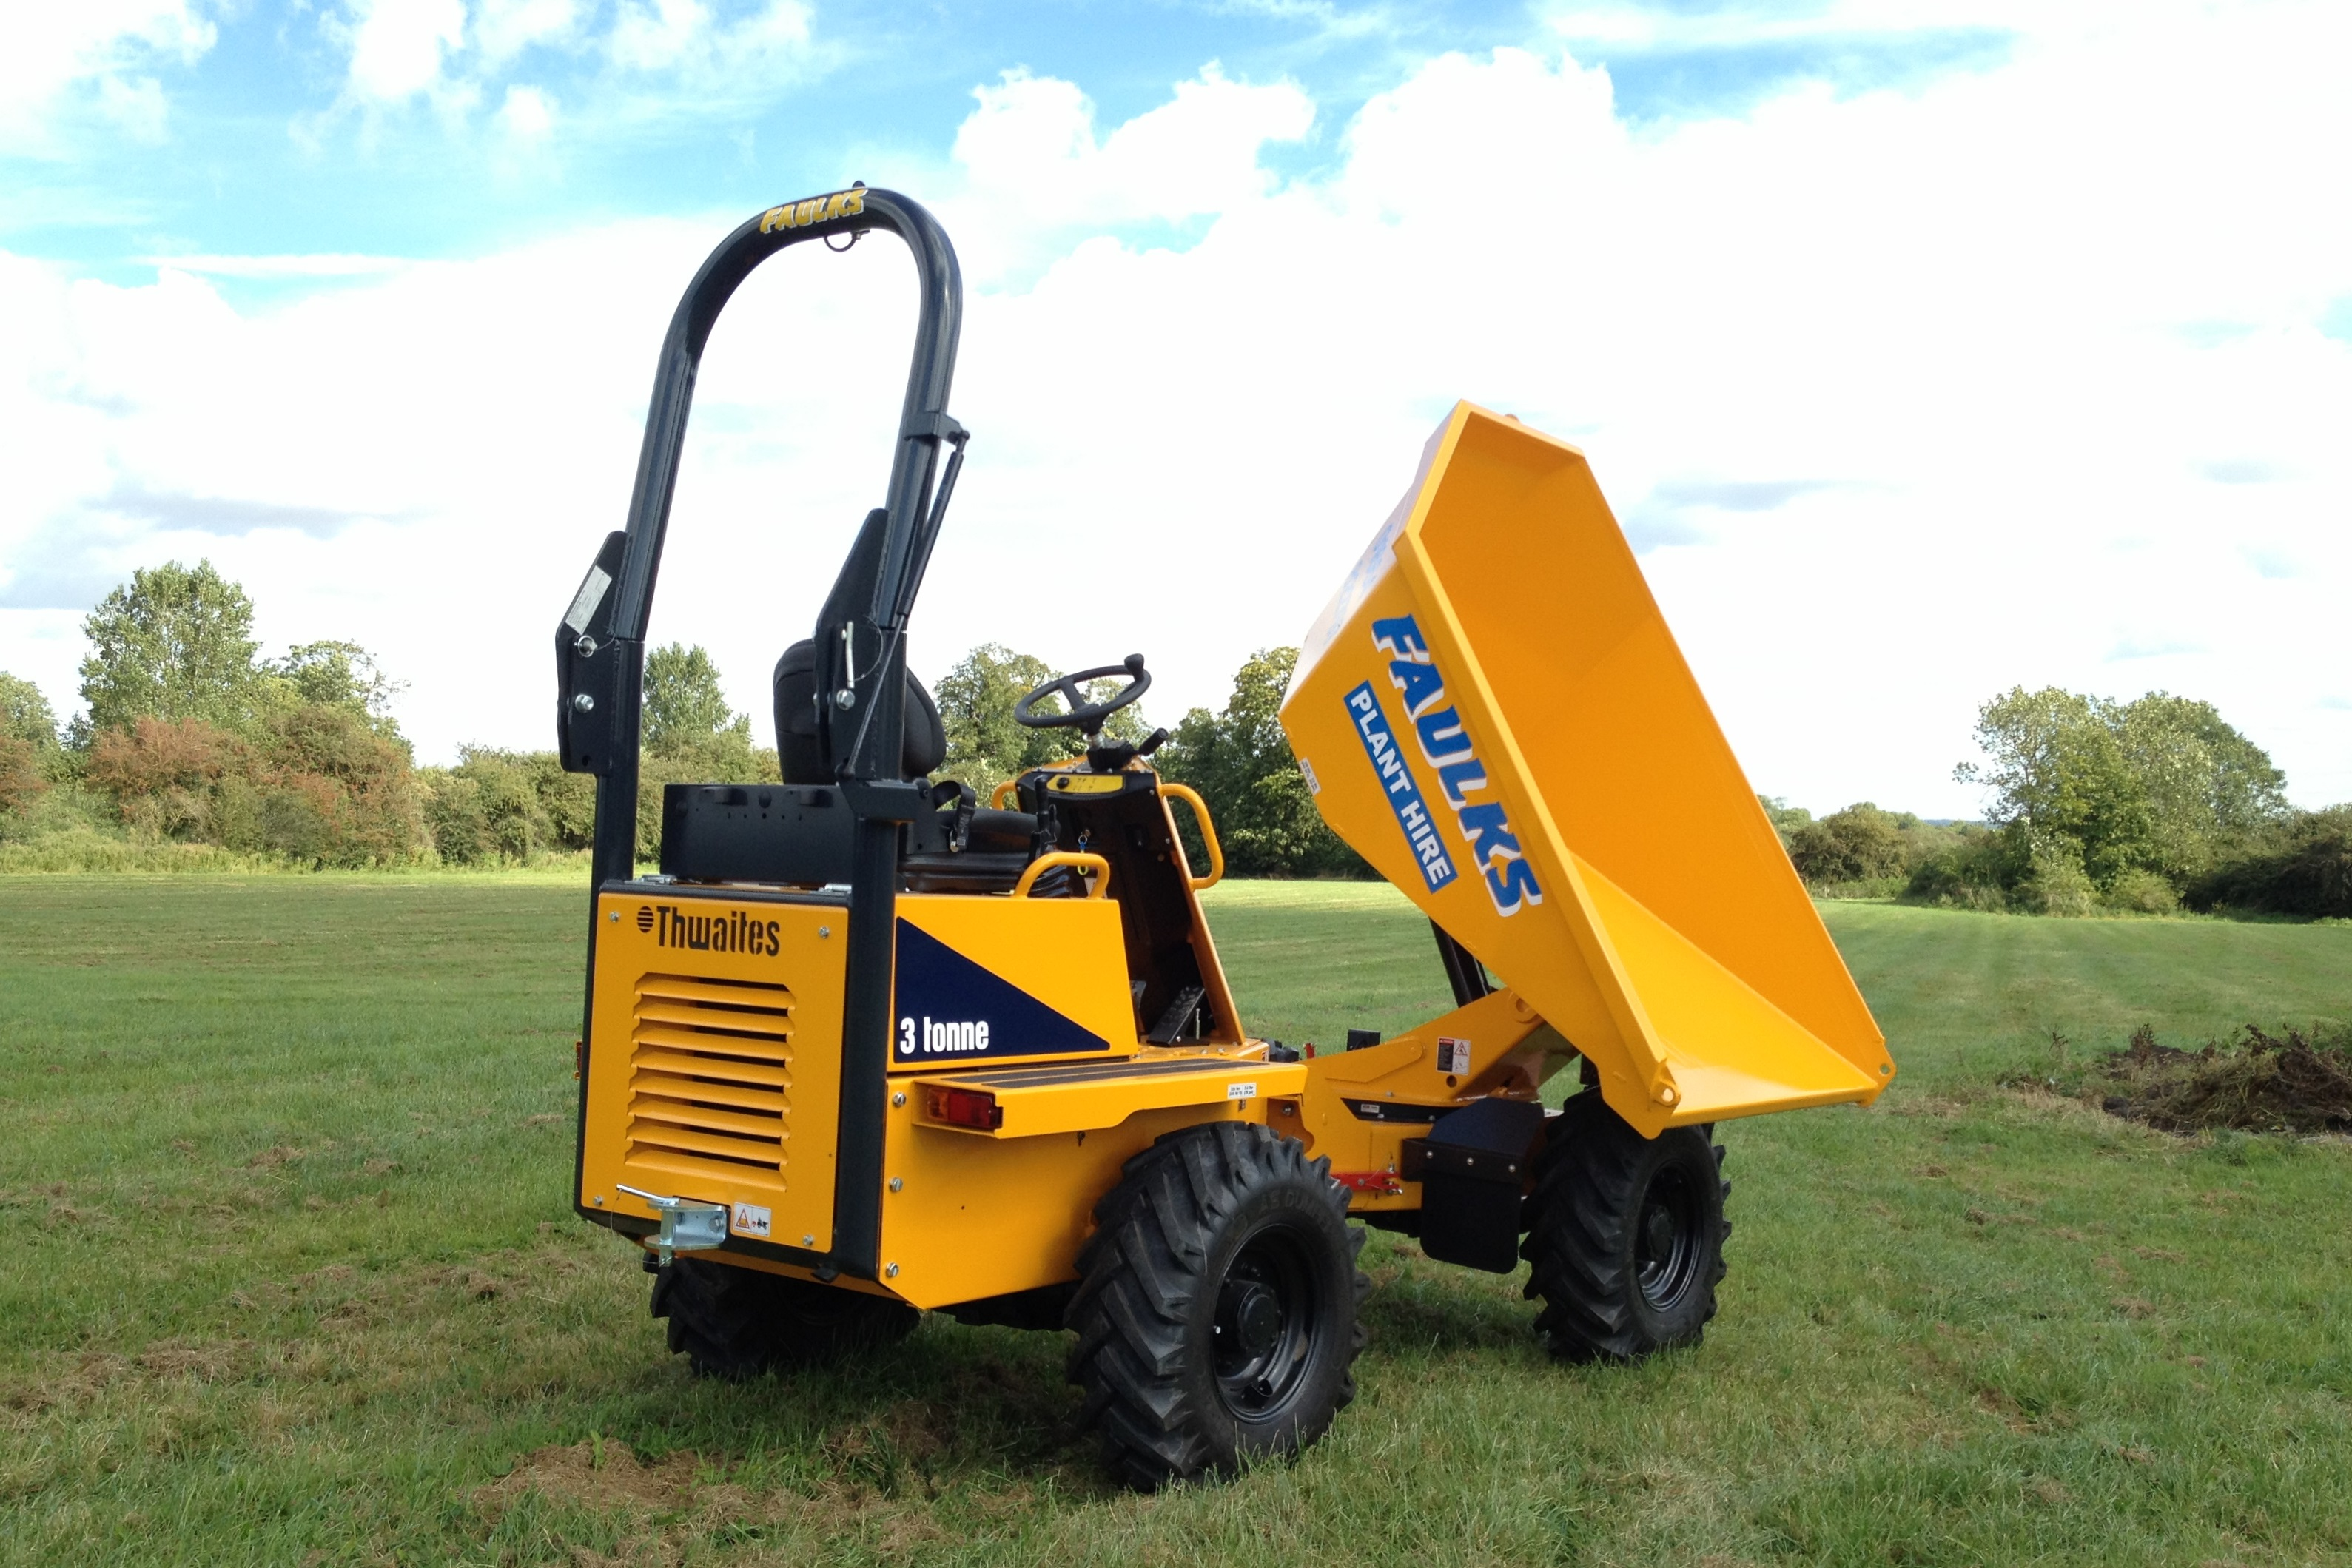 Small thwaites 3 tonne dumper in field with loader raised in topping position